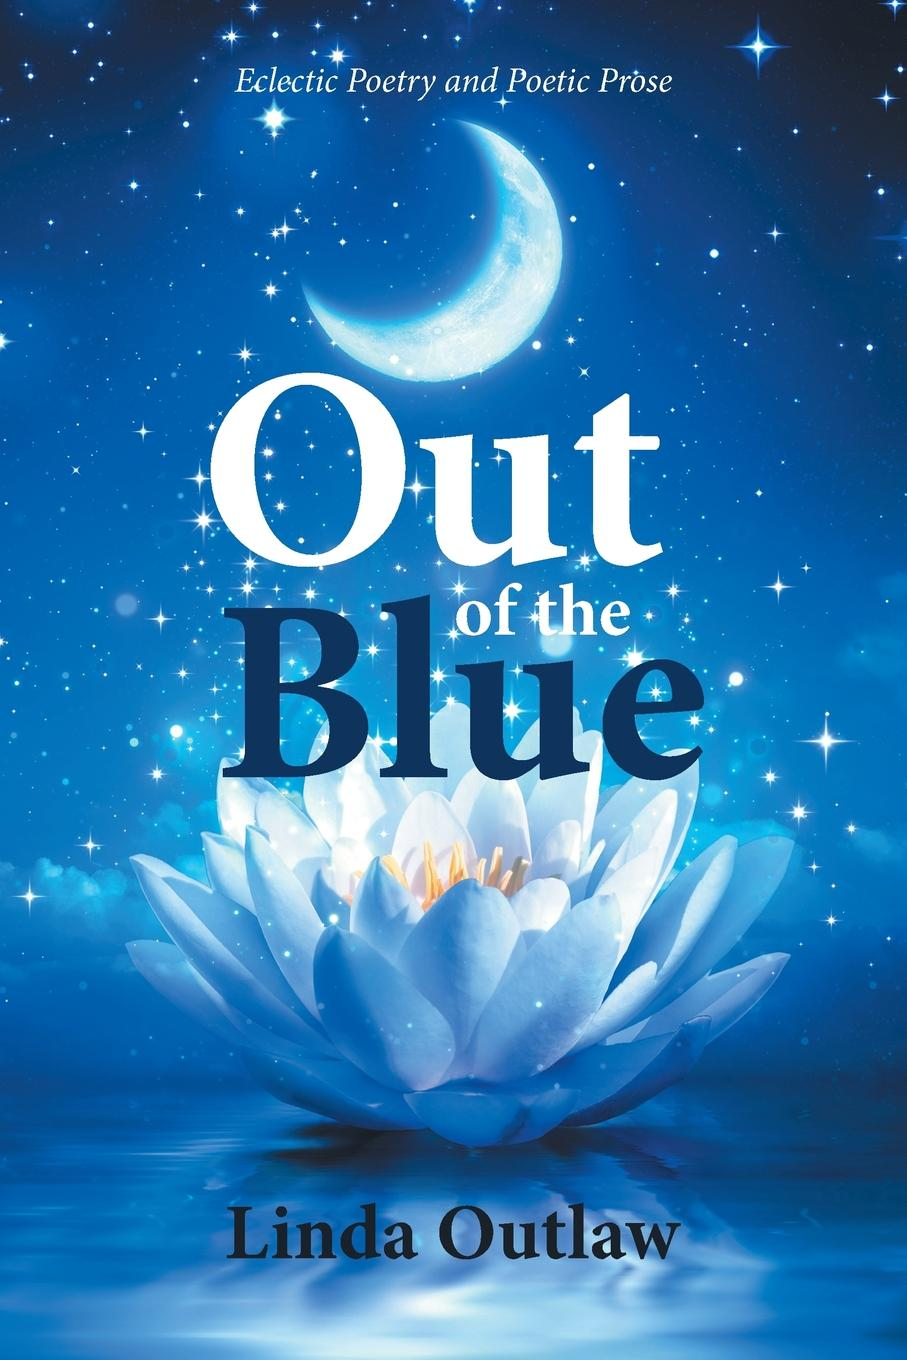 Linda Outlaw Out of the Blue. Eclectic Poetry and Poetic Prose poetic ponderings and piths